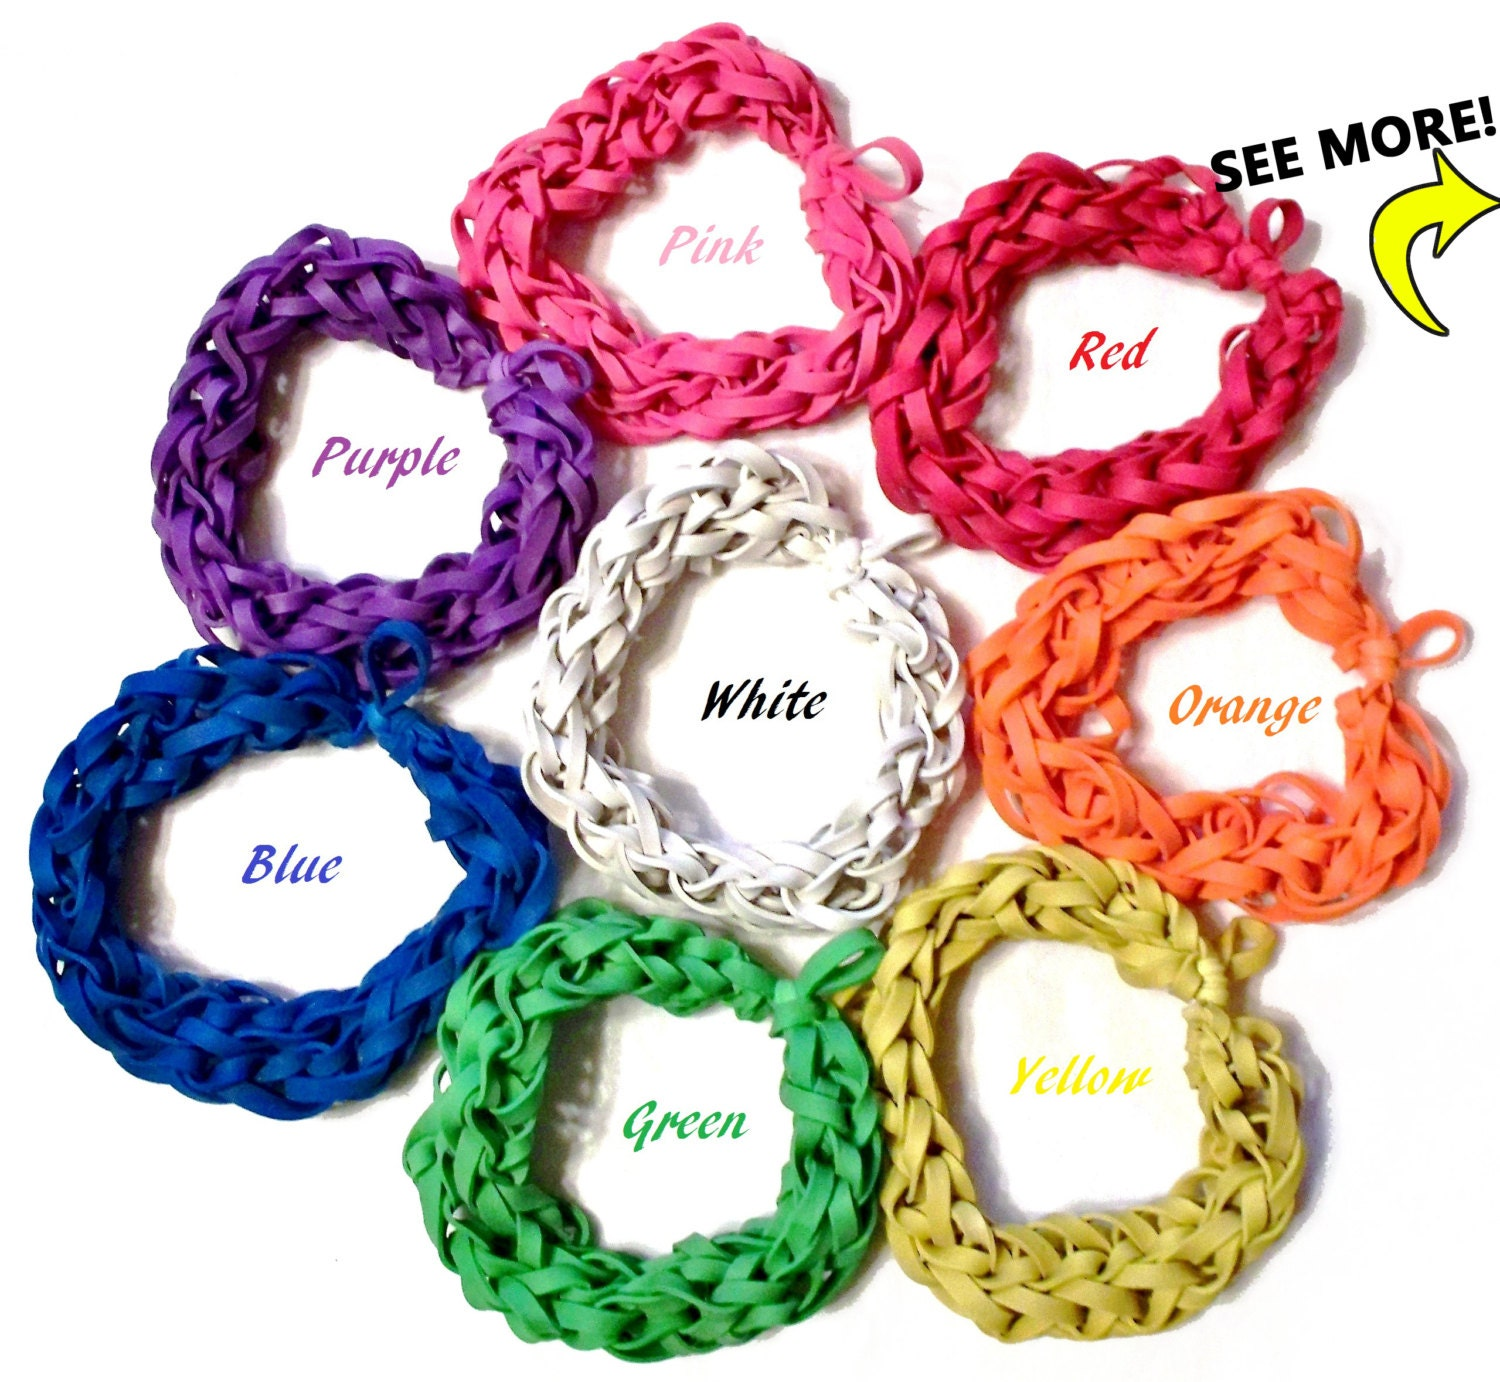 Customize Your Own Rubber Band Bracelet Bungle By Bunglebands